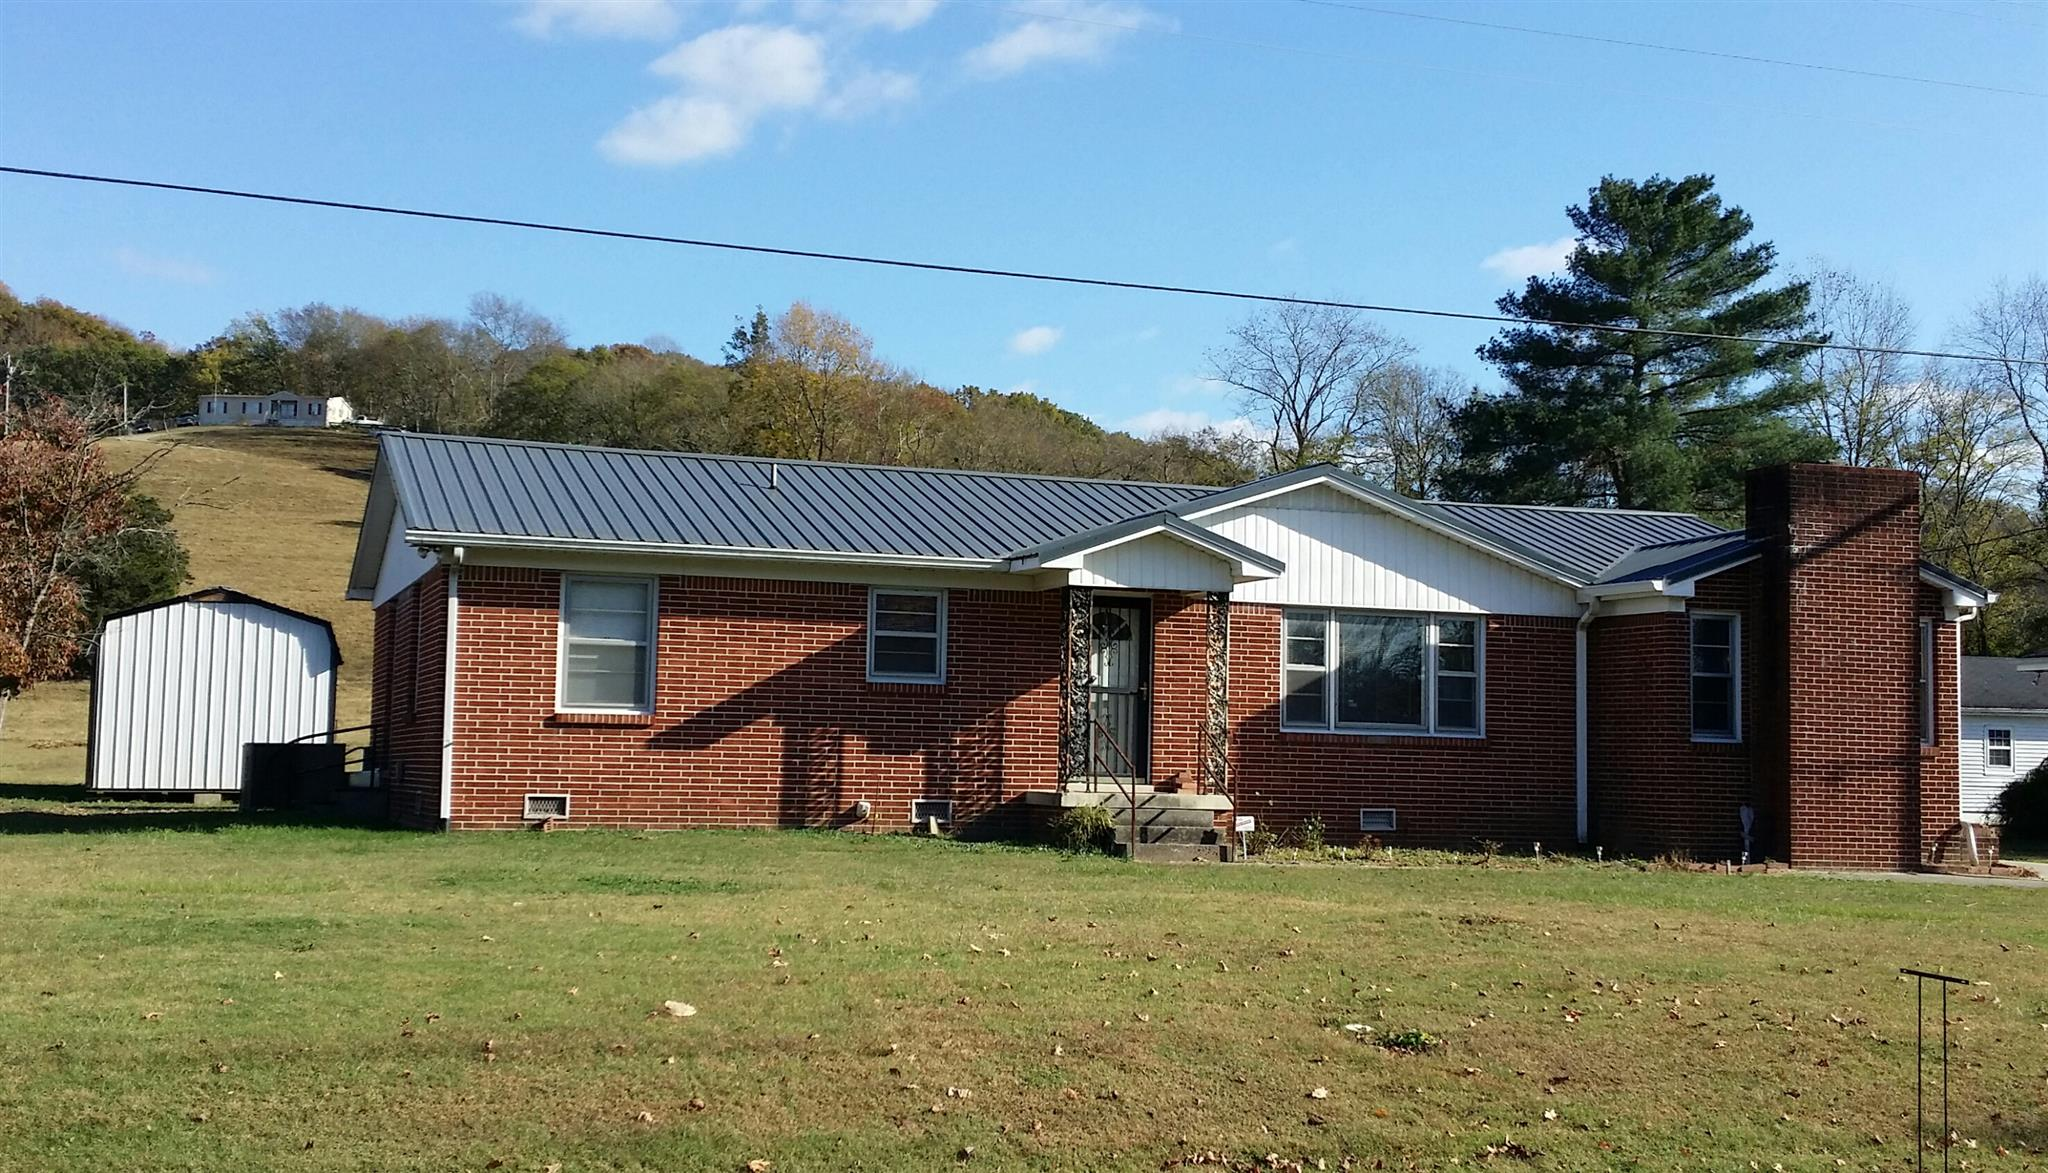 34 Horseshoe Bend Ln, Elmwood, TN 38560